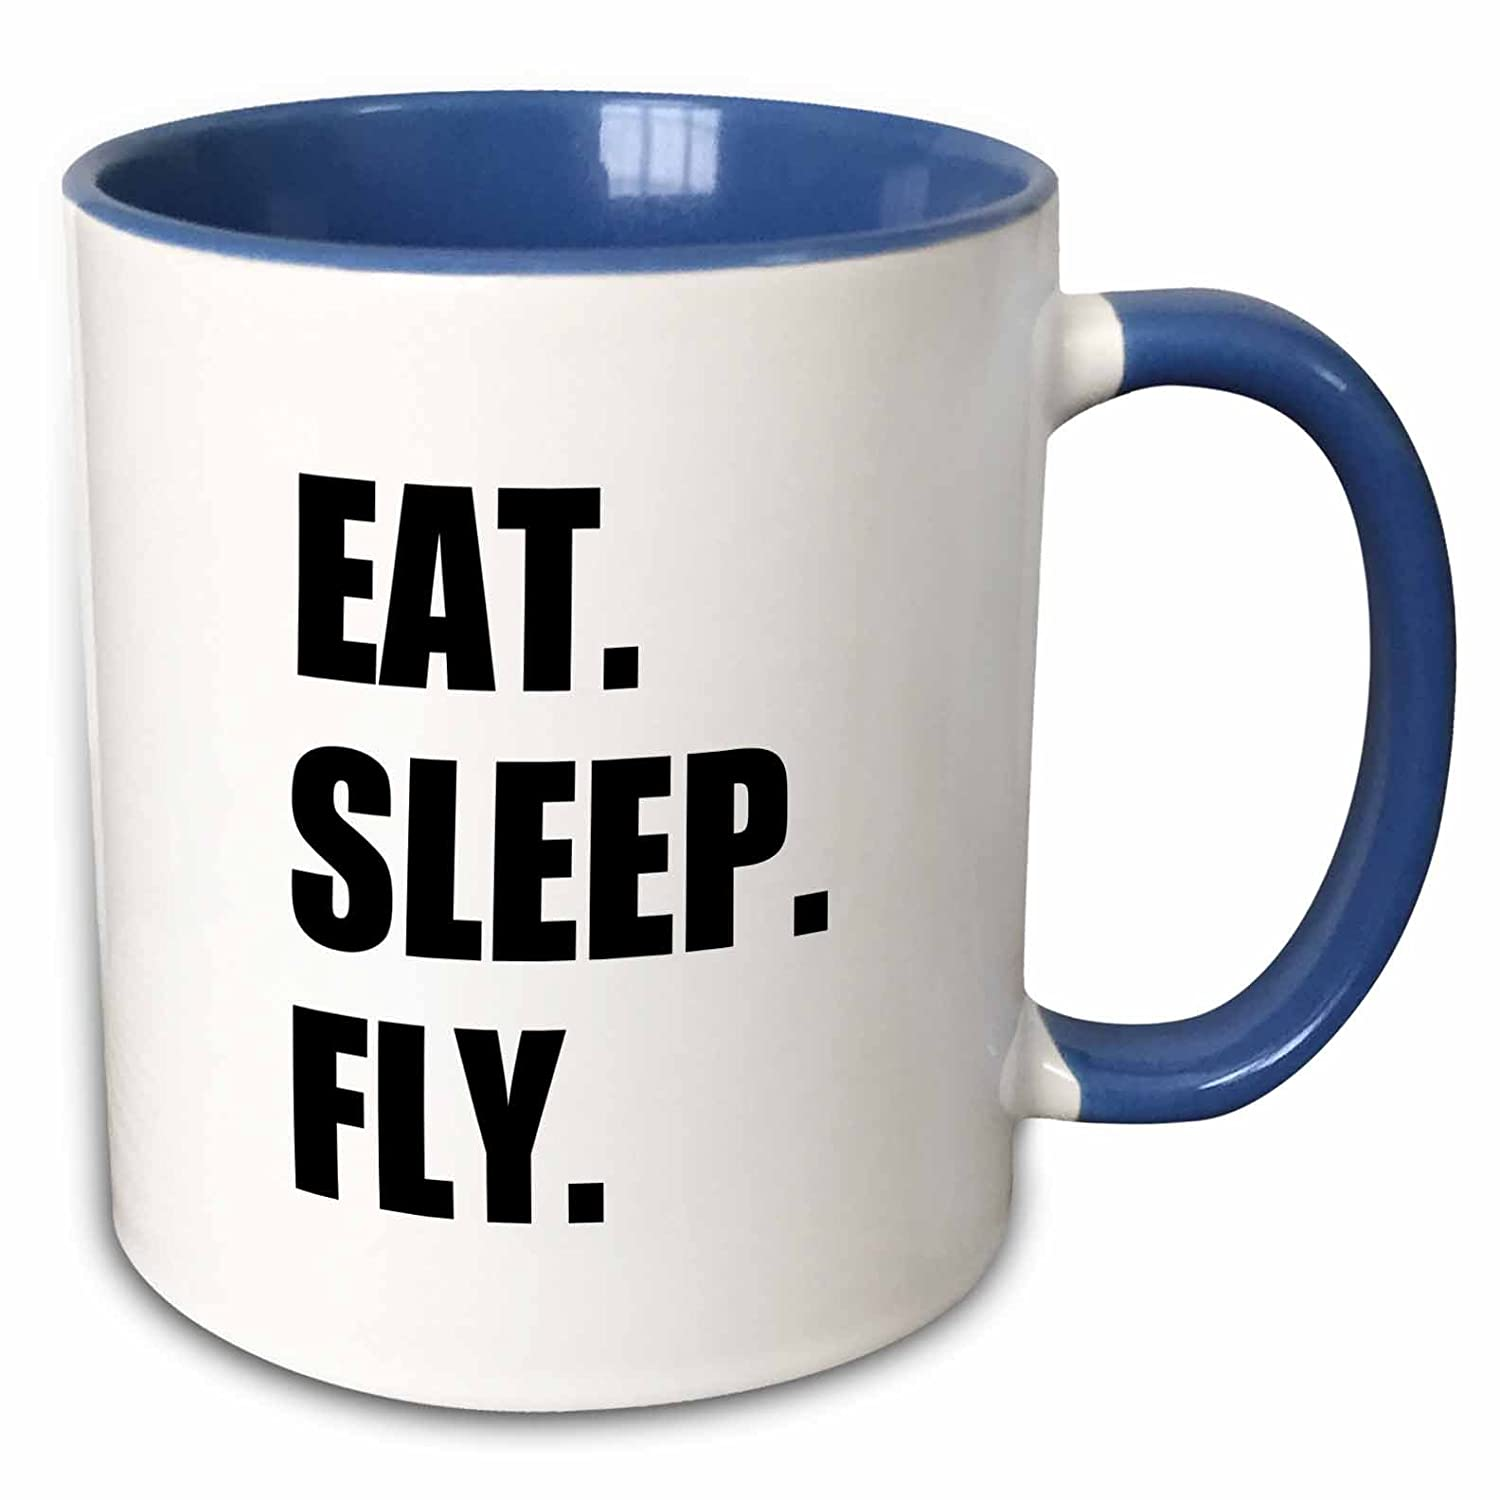 3dRose 180404/_4 Eat Sleep Fly Black 11 oz Fun Gifts For Pilots Flight Crew And Frequent Flyers Two Tone Mug